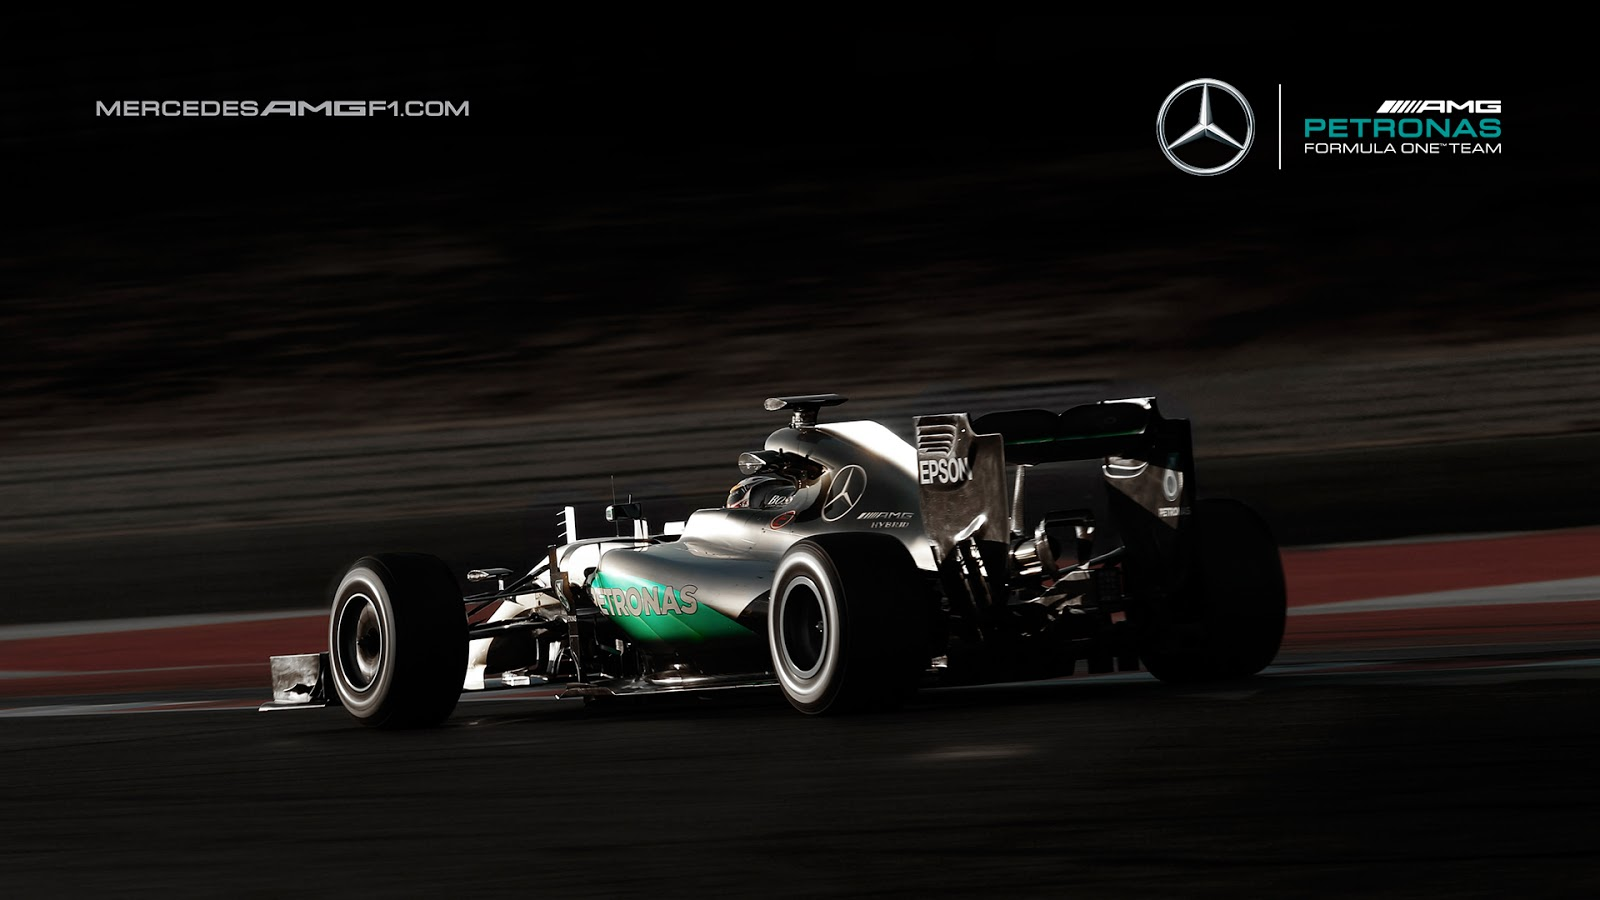 Mercedes amg f1 wallpaper